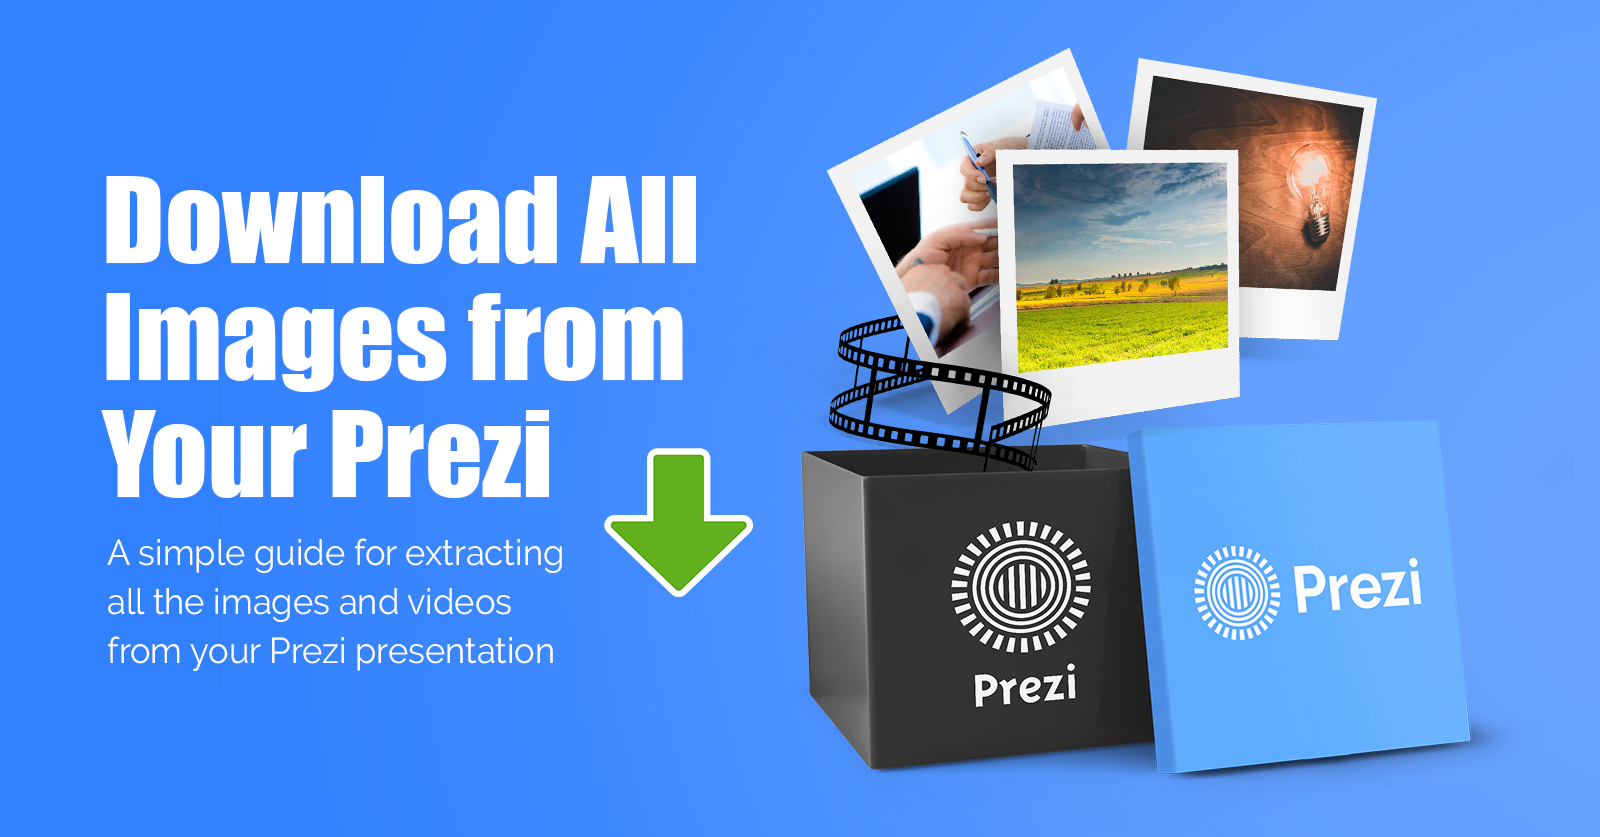 extract-download-images-from-a-prezi-presentation